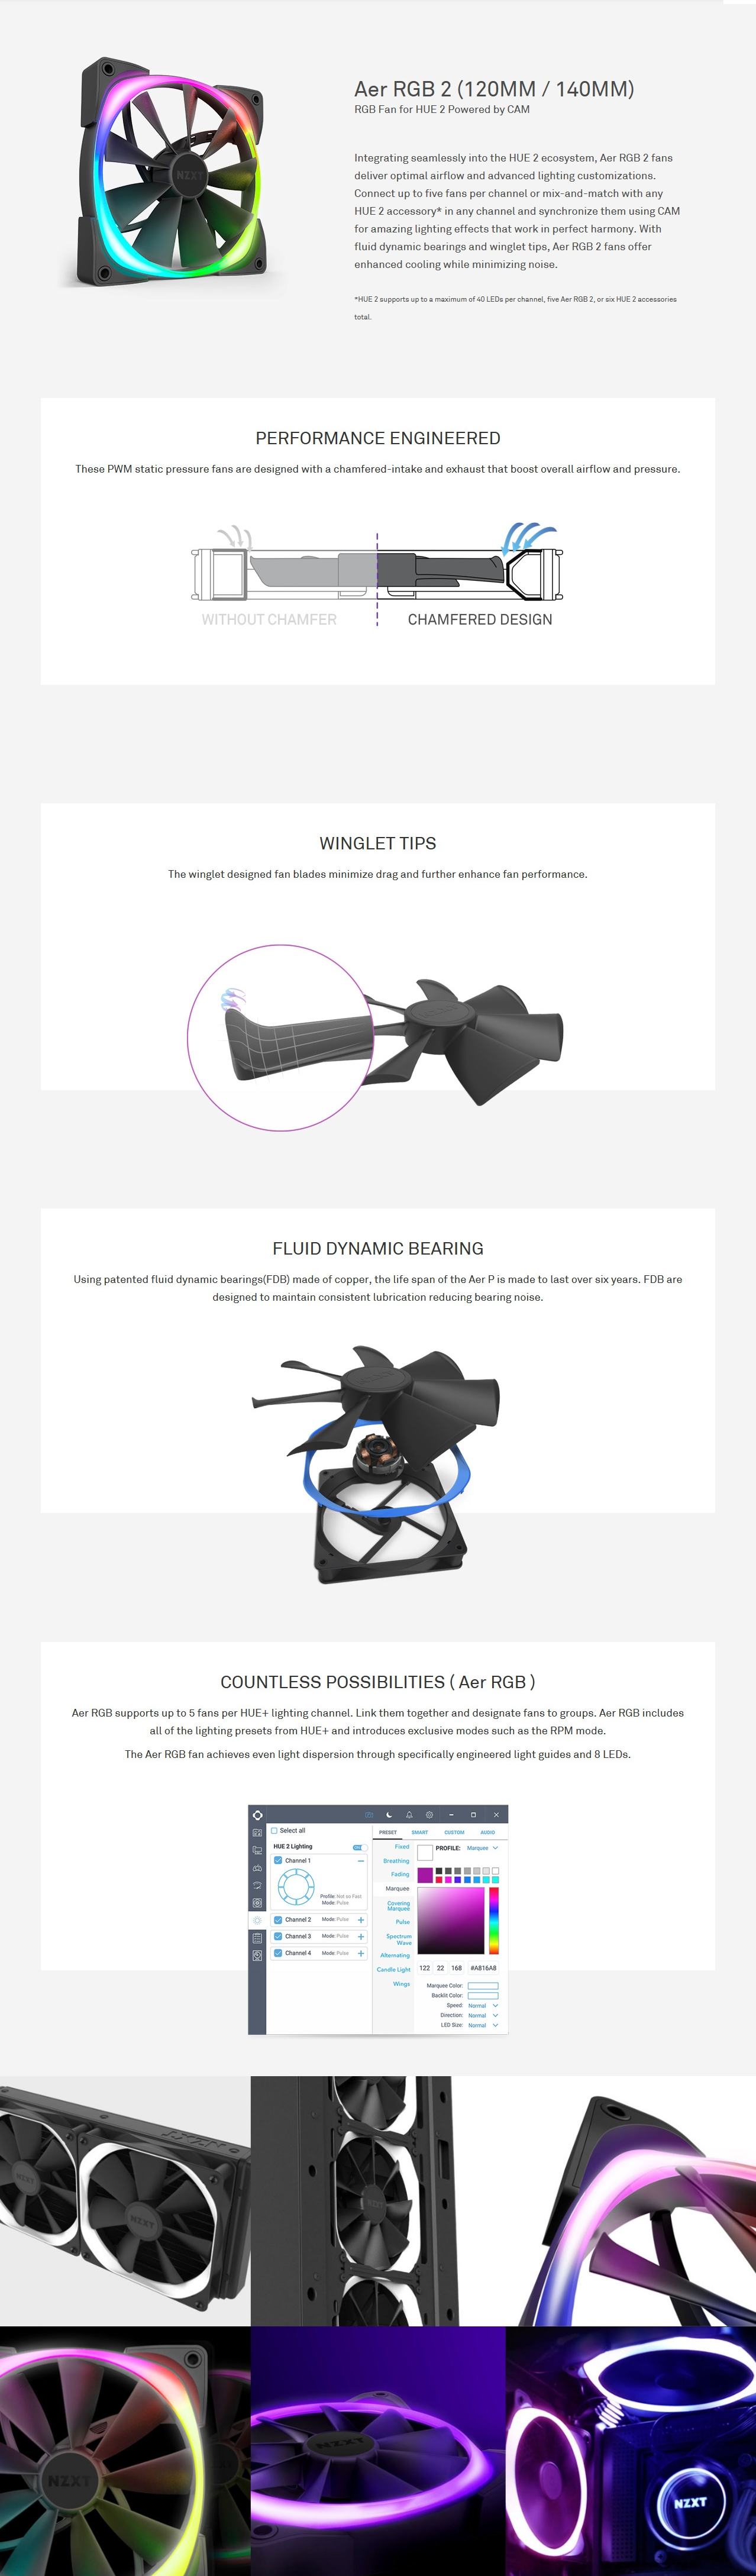 A large marketing image providing additional information about the product NZXT Aer2 RGB 120mm Case Fan - Additional alt info not provided